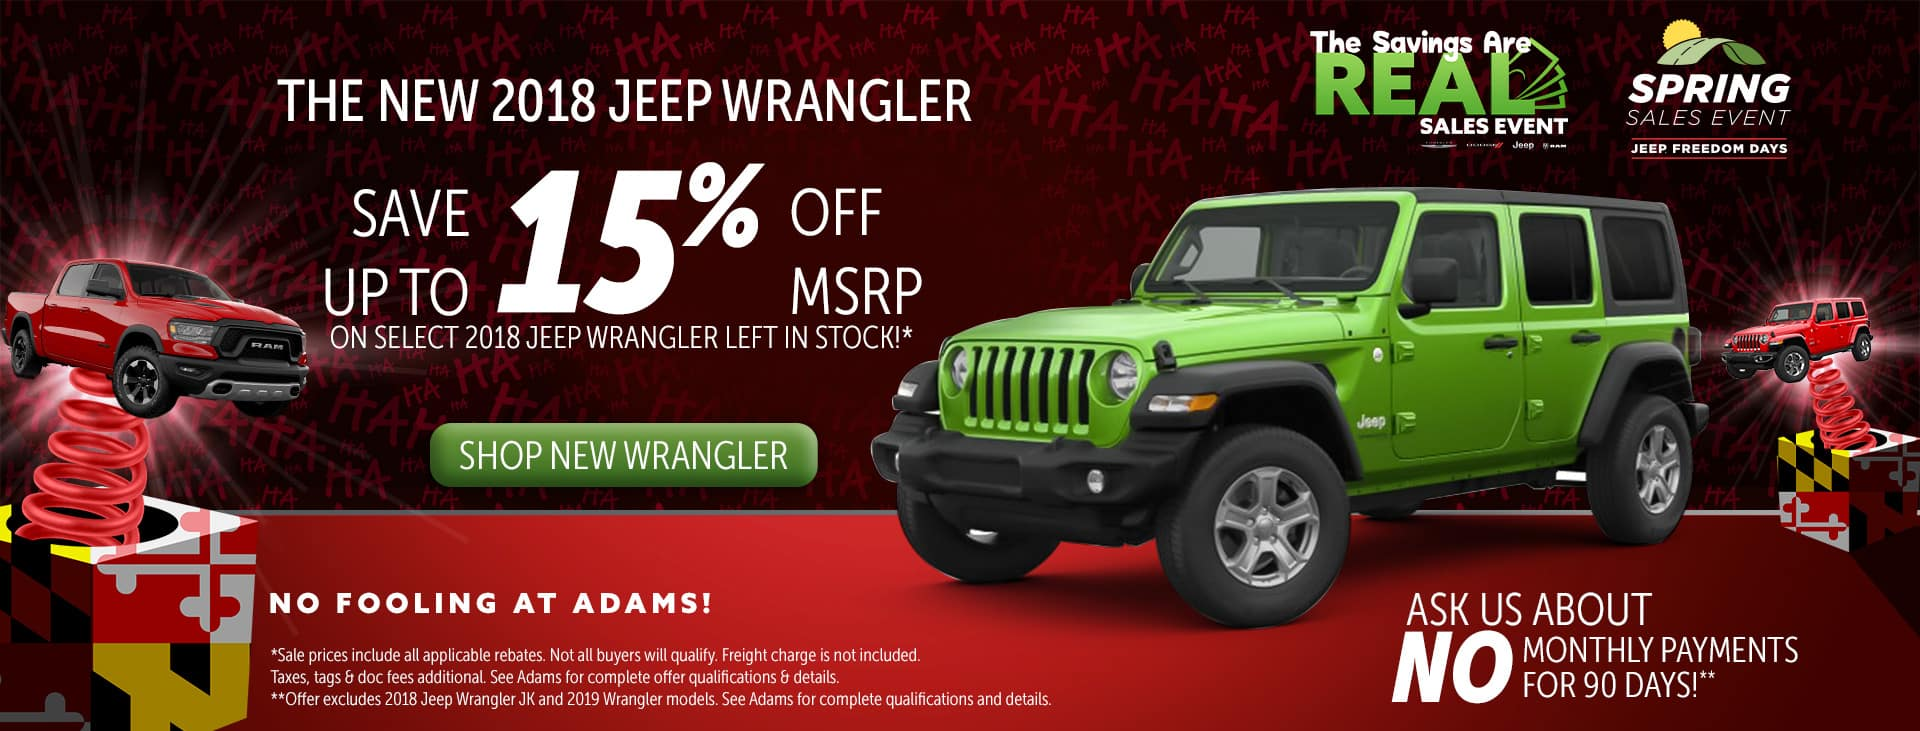 up to 15% off wrangler